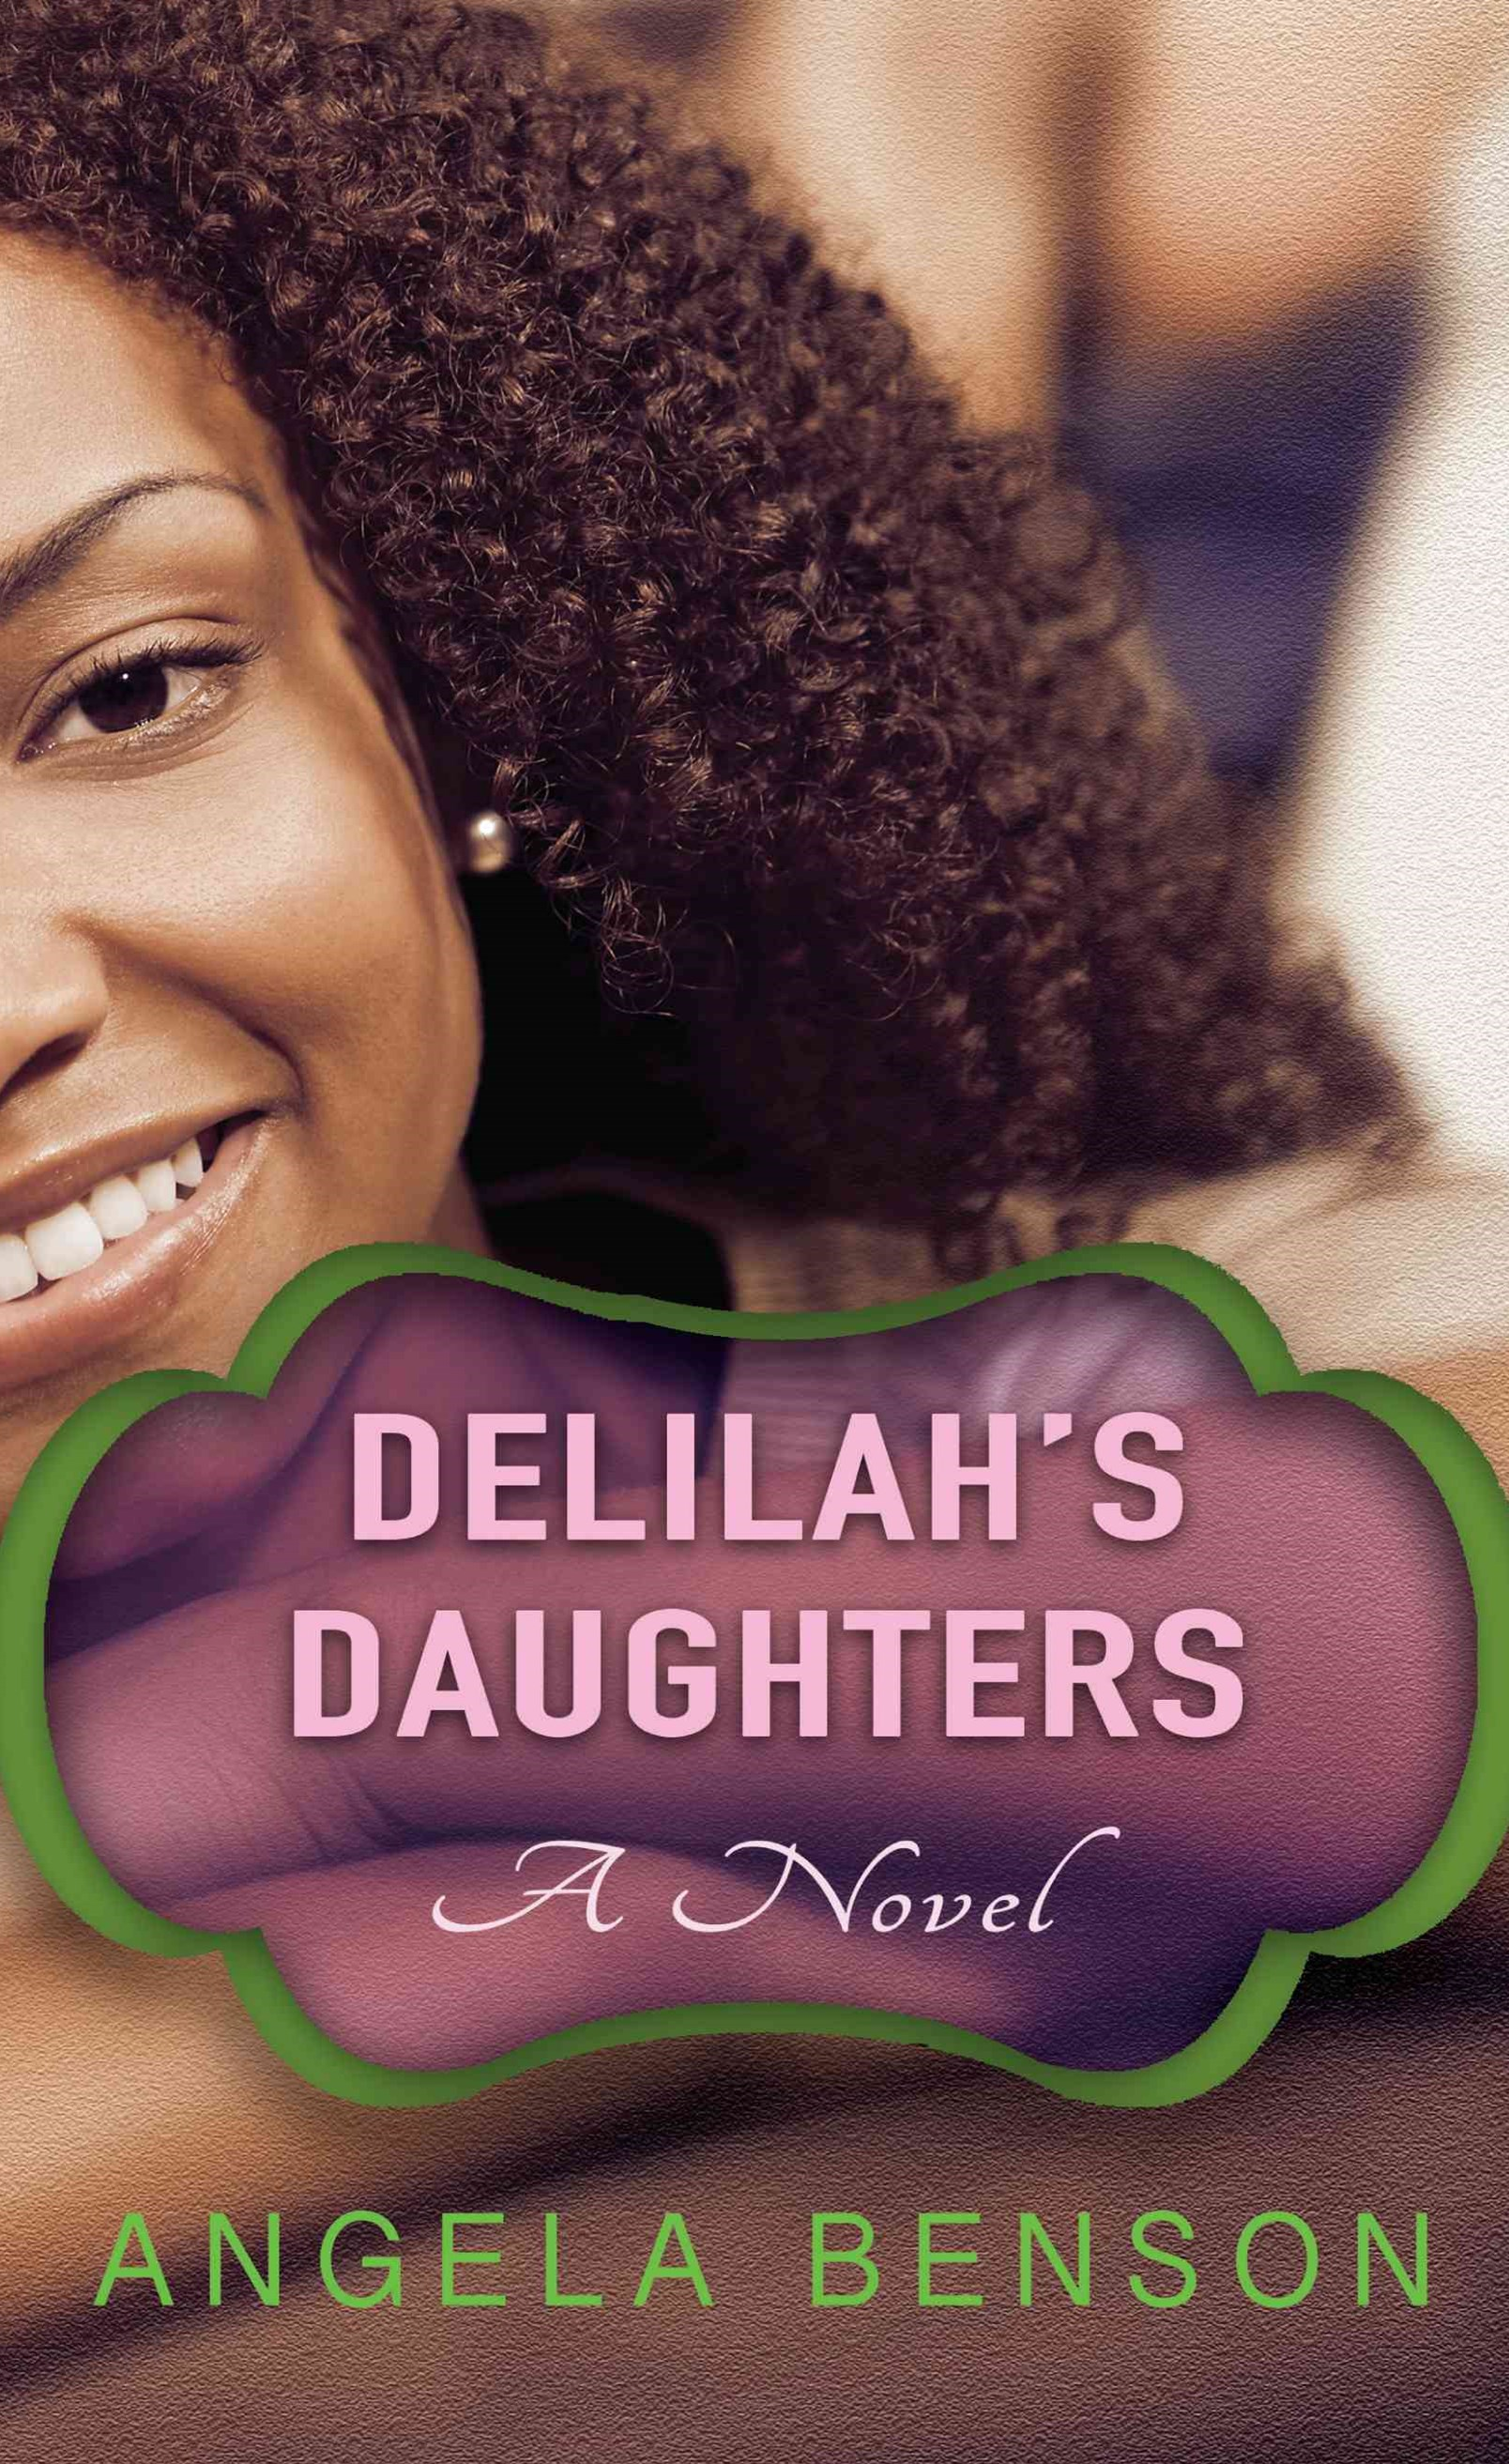 Delilah's Daughters